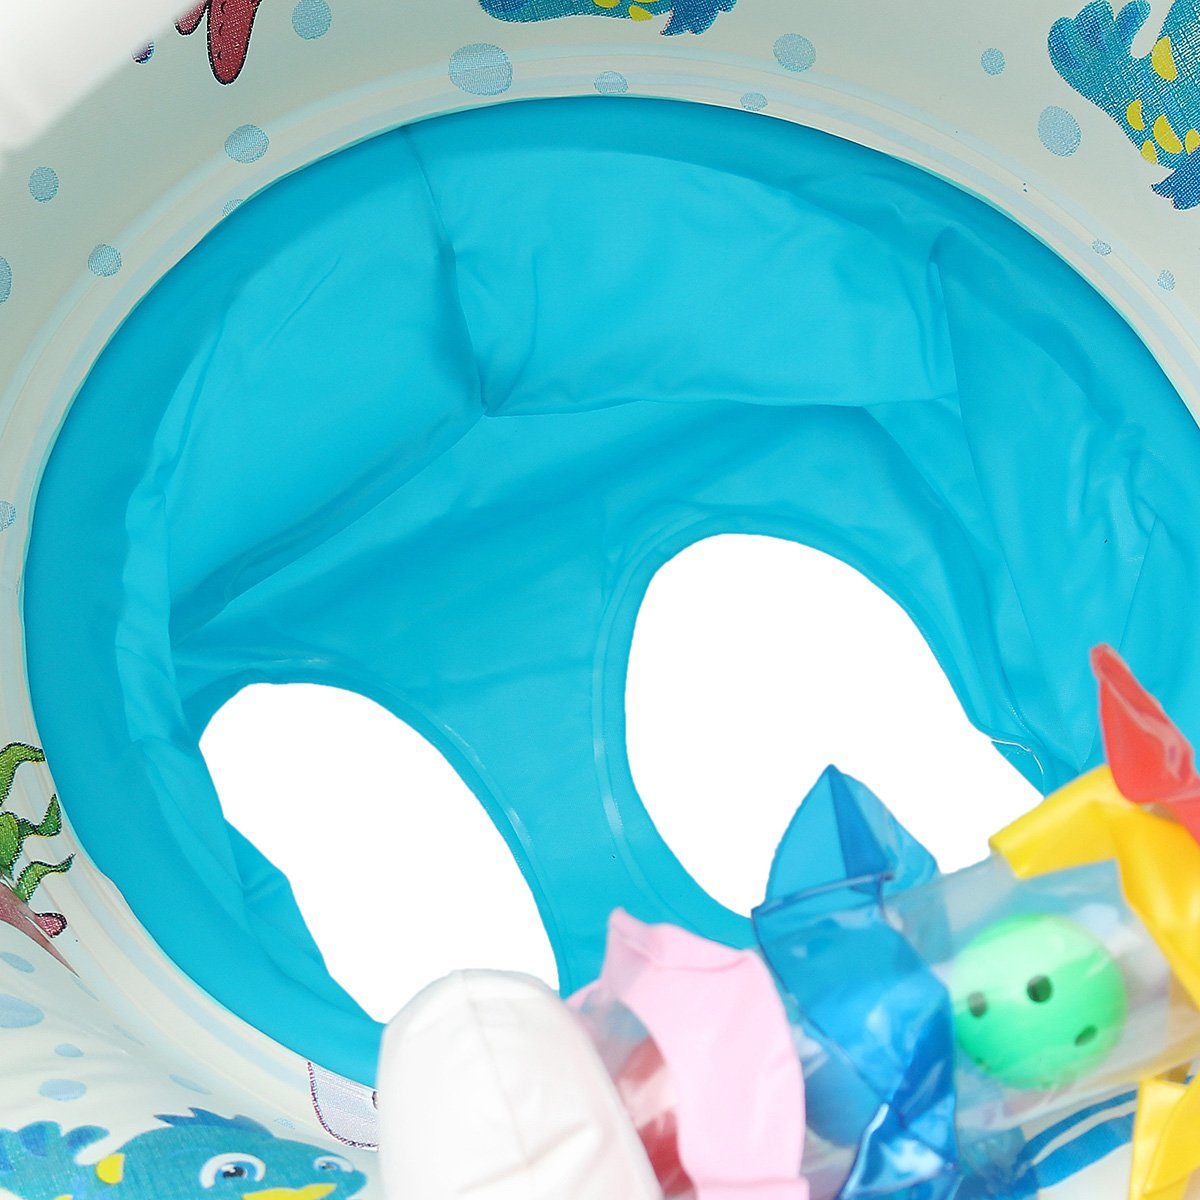 Water Sports WD Inflatable Mother Baby Swimming Ring Swim Pool Water Seat Float with Canopy Sunshade by Wincom Dishman (Image #6)